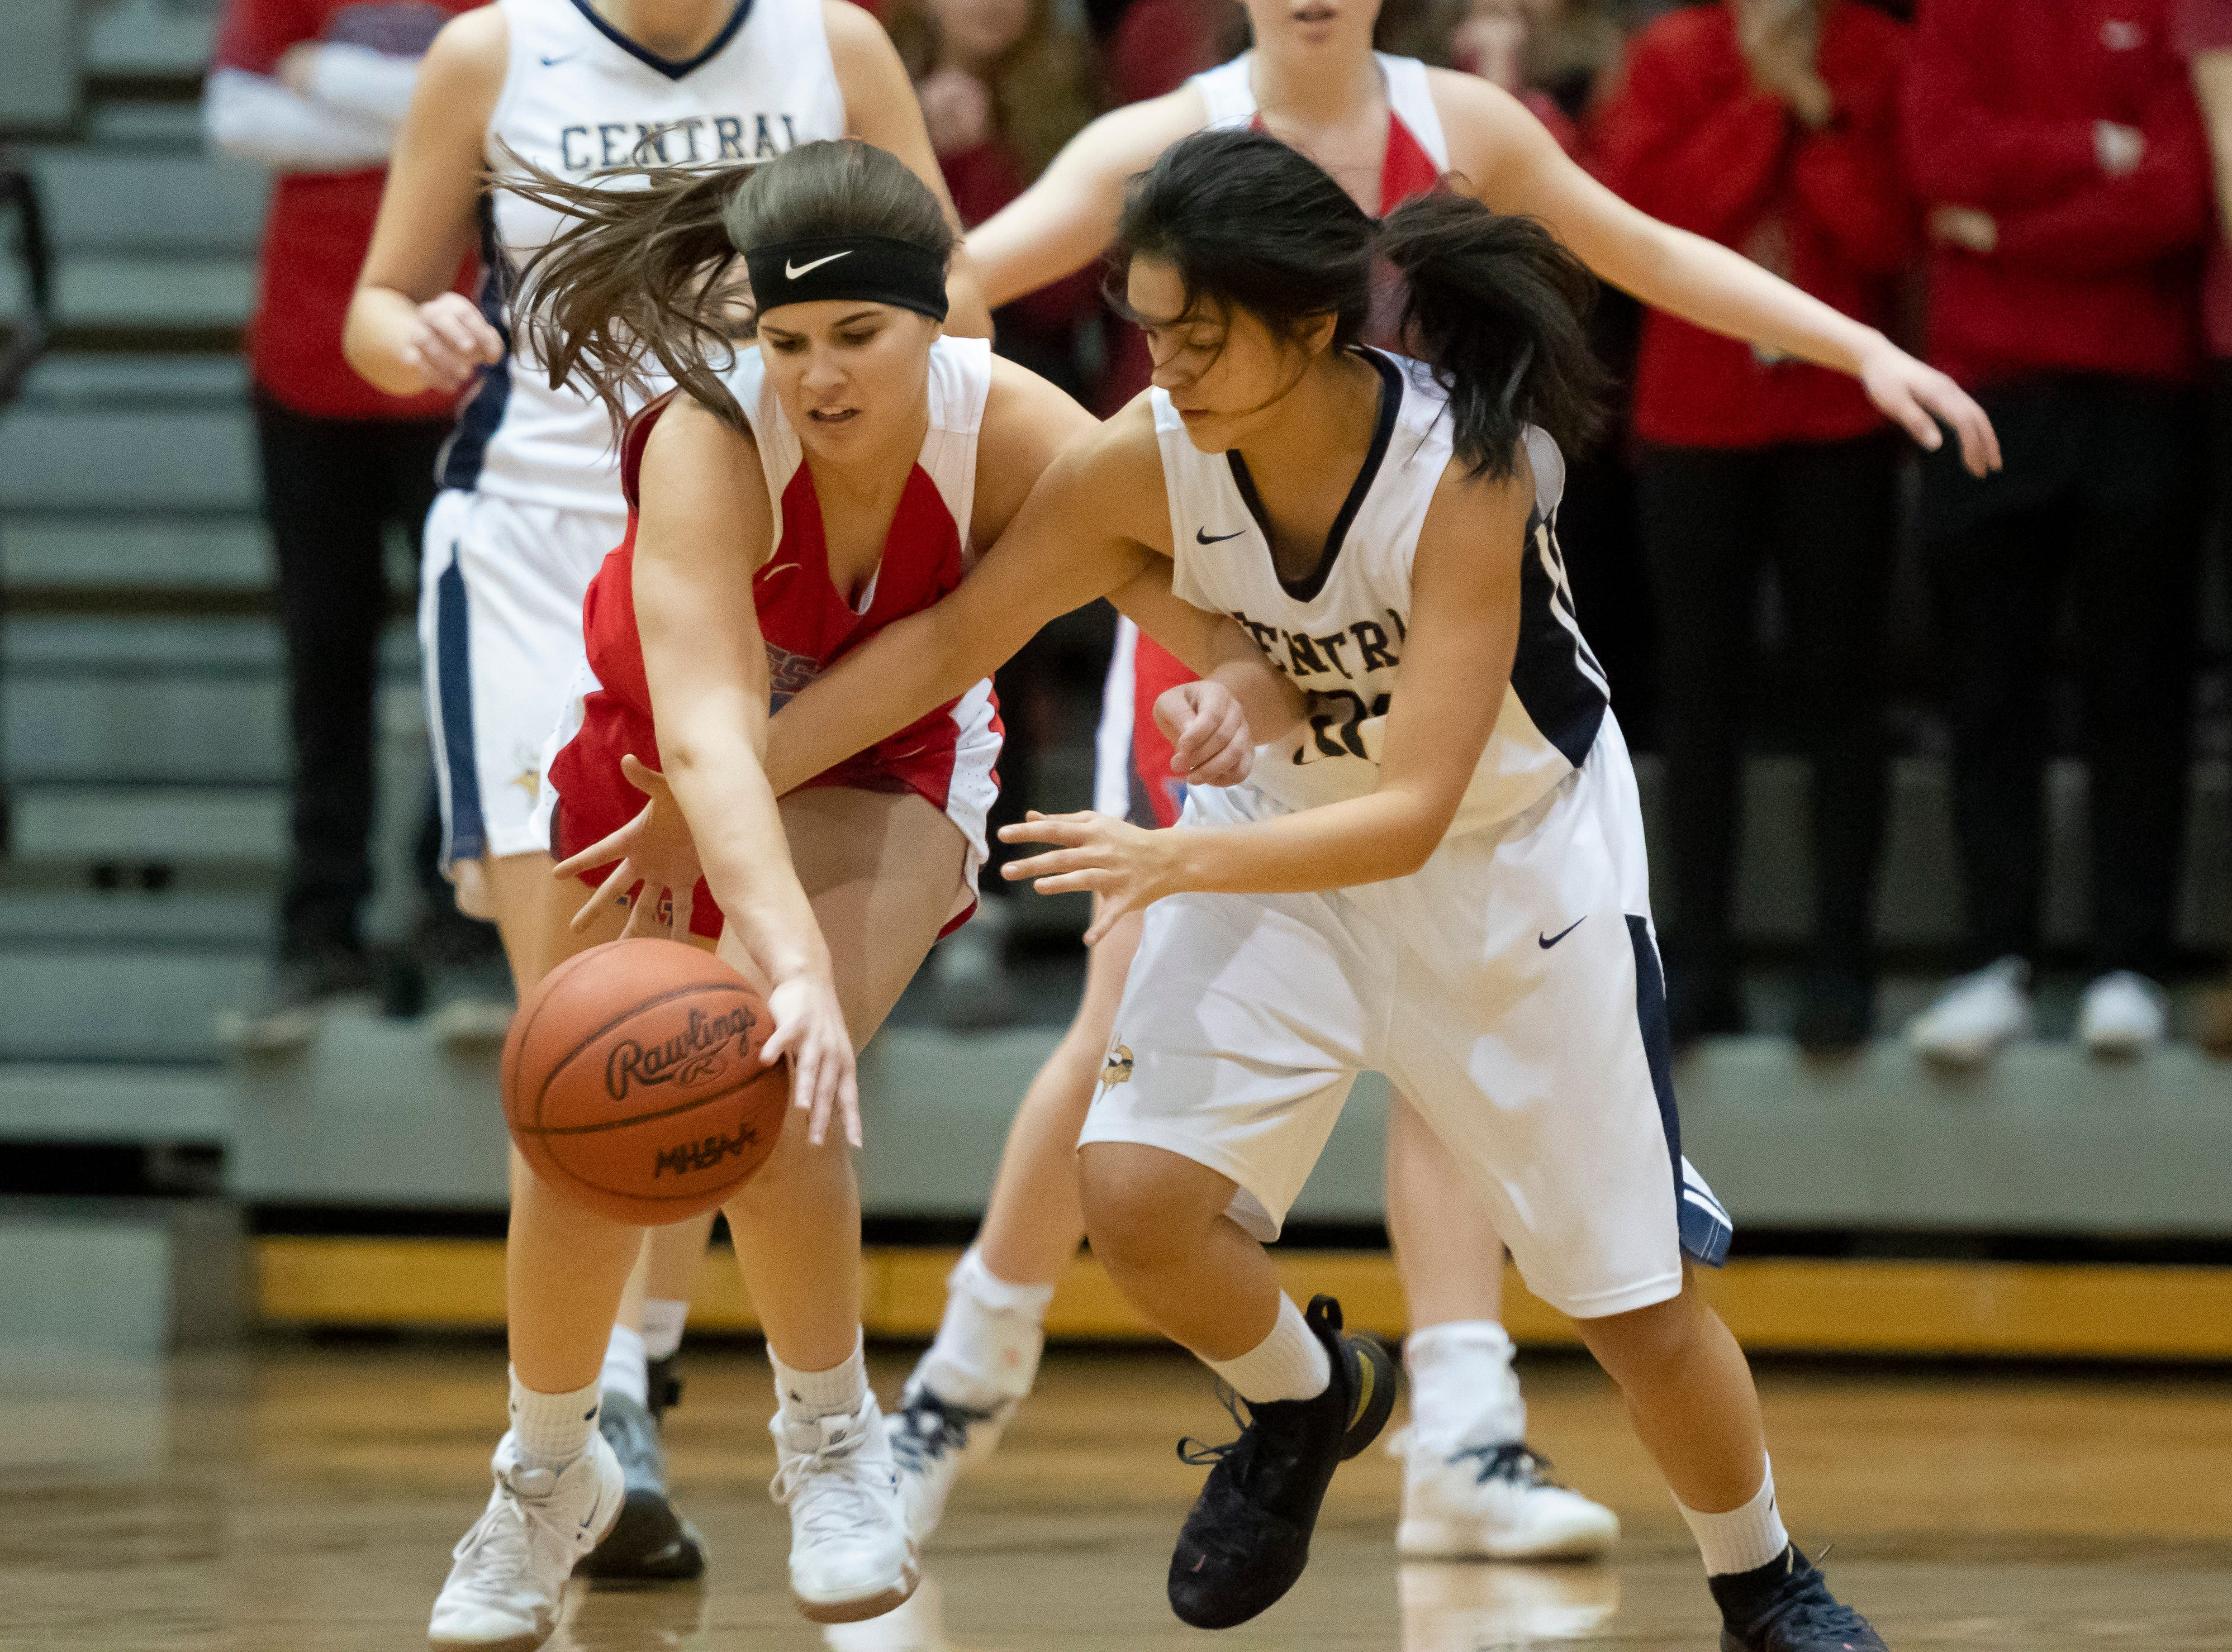 Walled Lake Western guard Olivia Warren, left, and Walled Lake Central guard Maria Teodoro battle for a loose ball in the first half. Western defeated Central 48-31 knocking their rival out of the state playoffs.